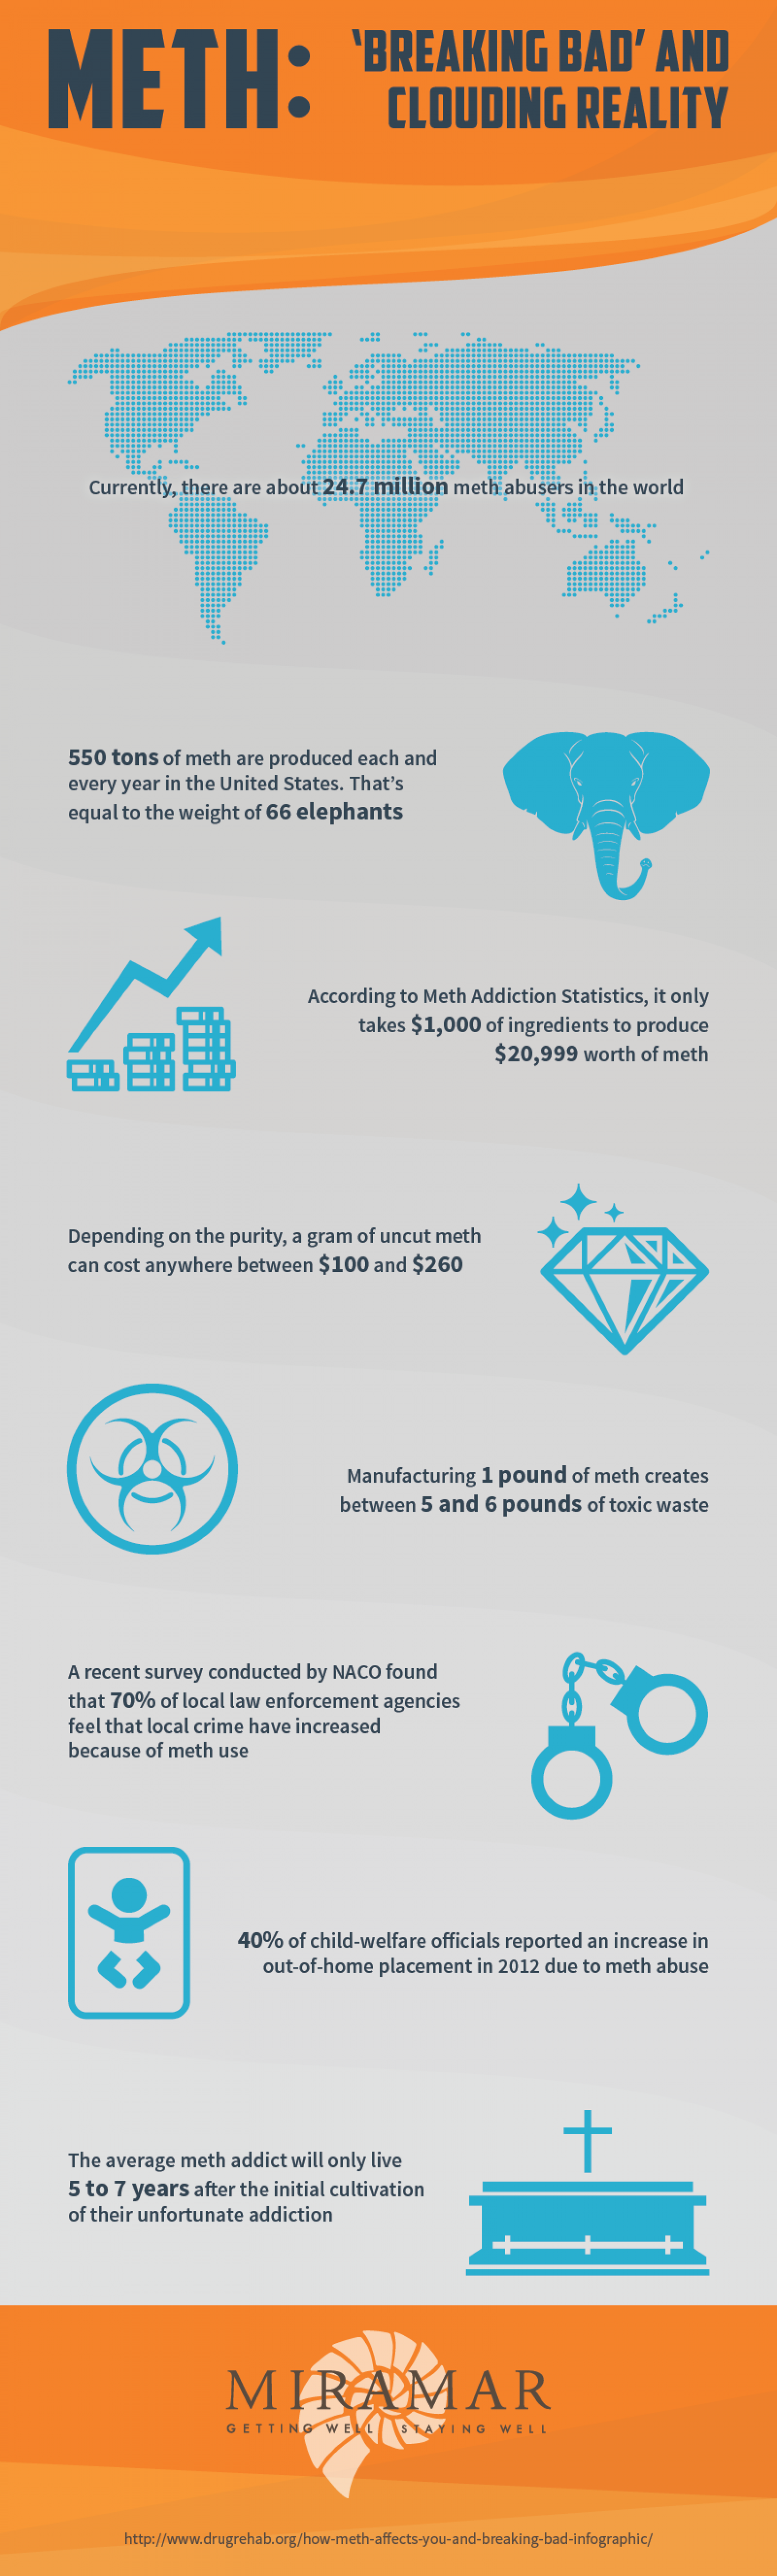 'Breaking Bad,' Yet Clouding Reality at the Same Time Infographic